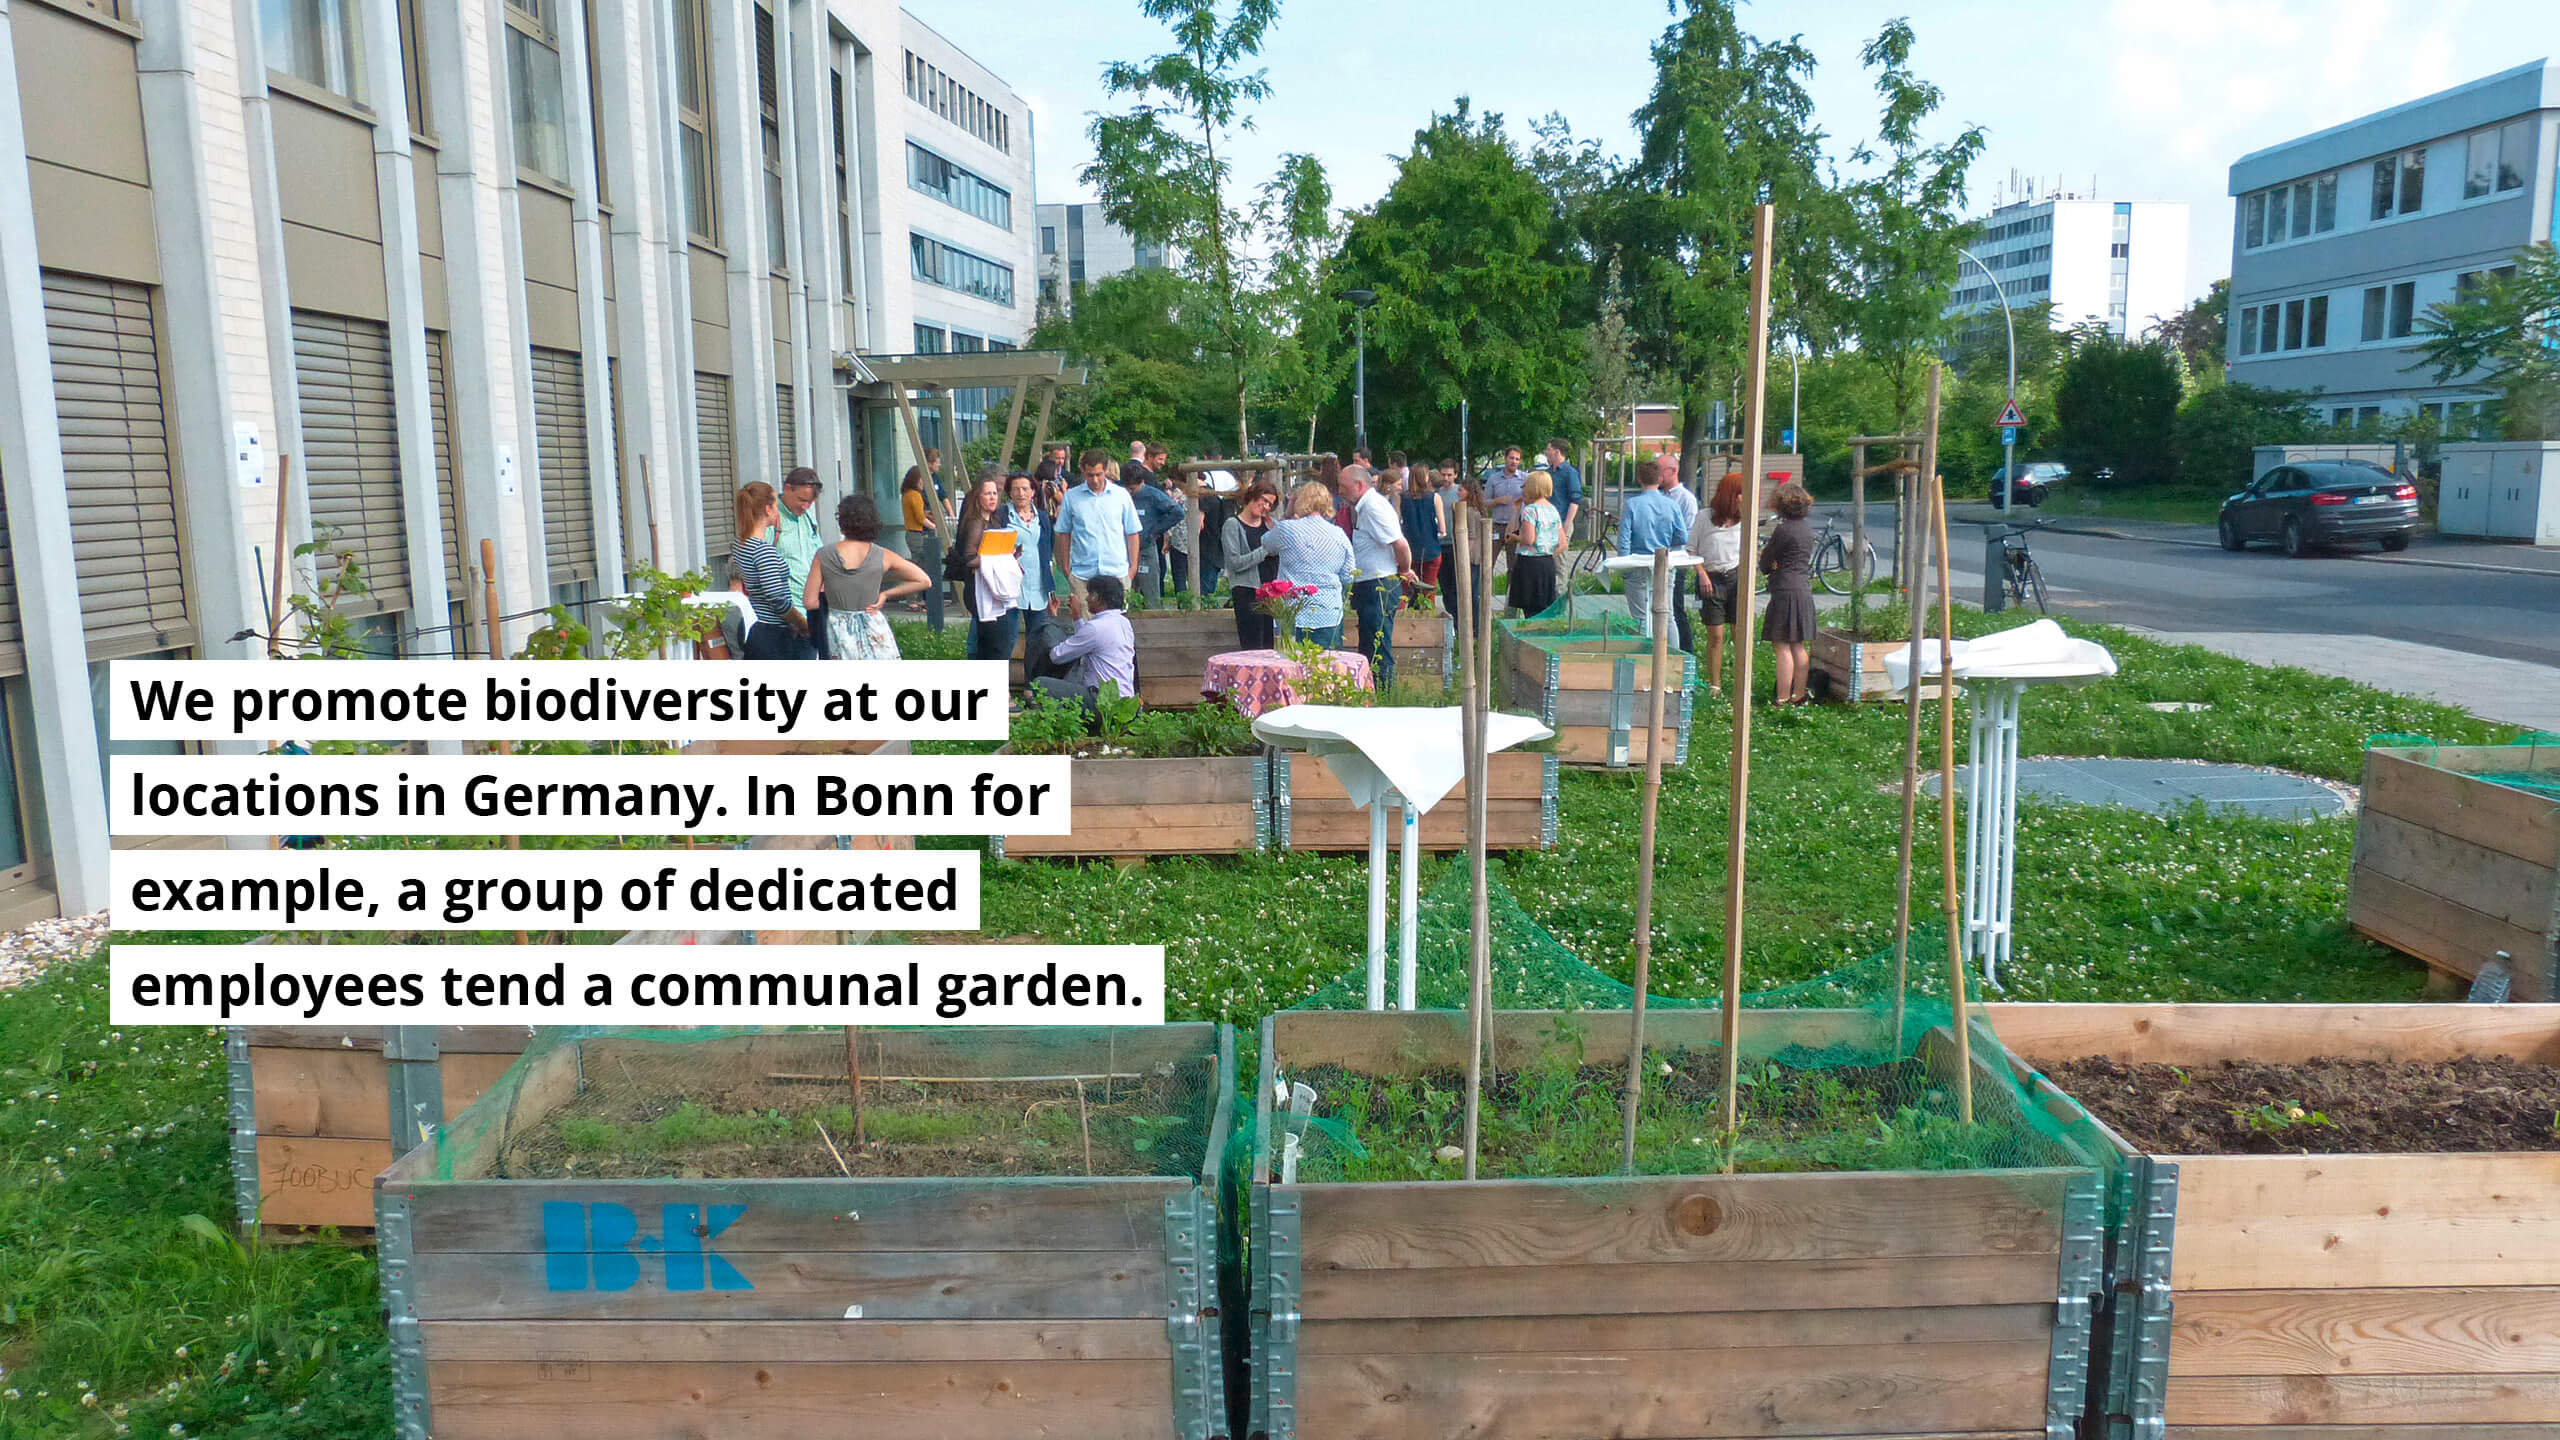 We promote biodiversity at our locations in Germany. In Bonn for example, a group of dedicated employees tend a communal garden.